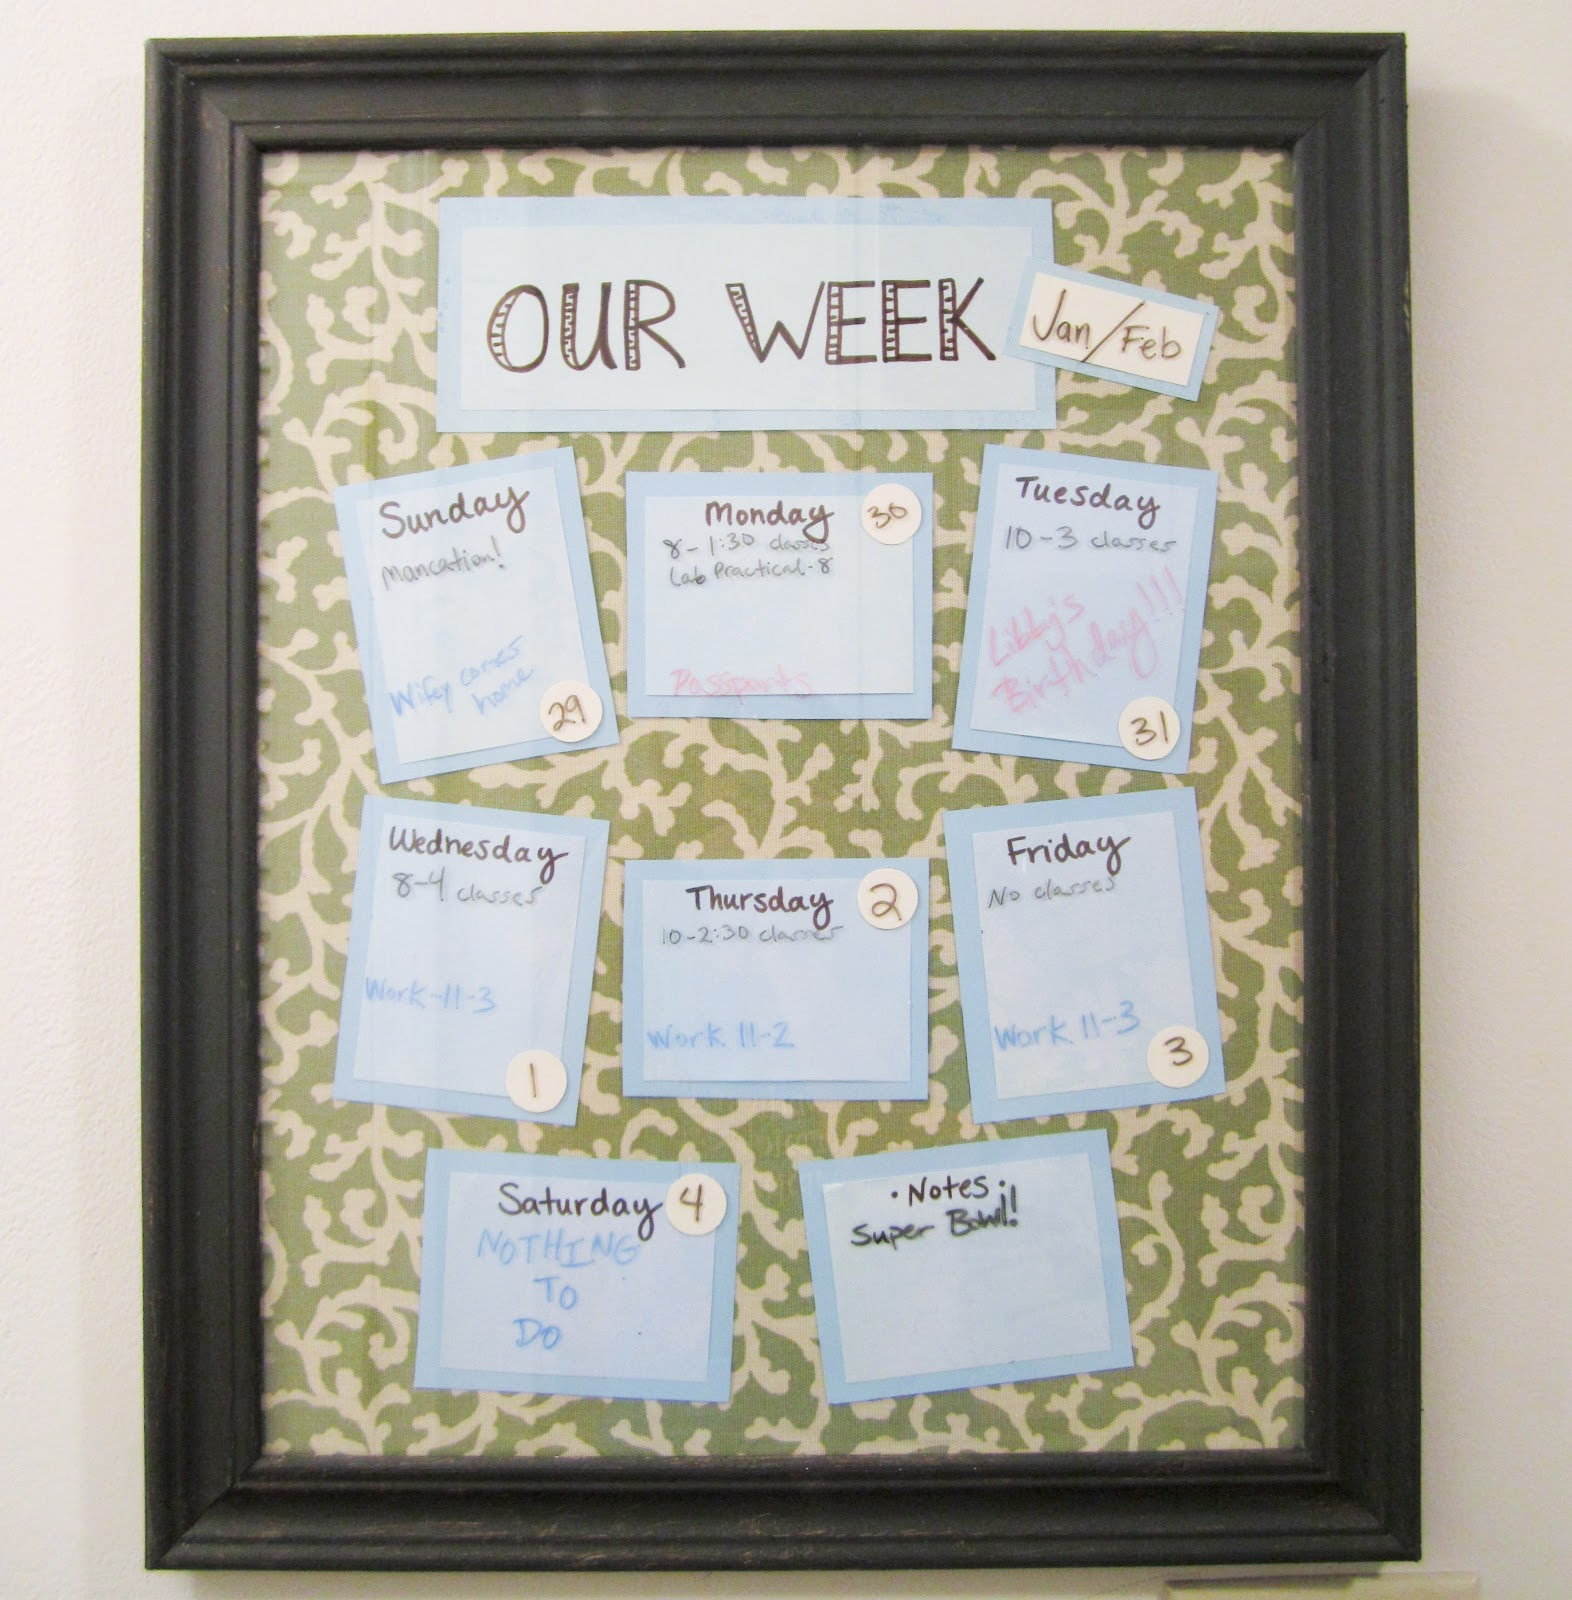 Diy Weekly Calendar : Williams way diy weekly calendar